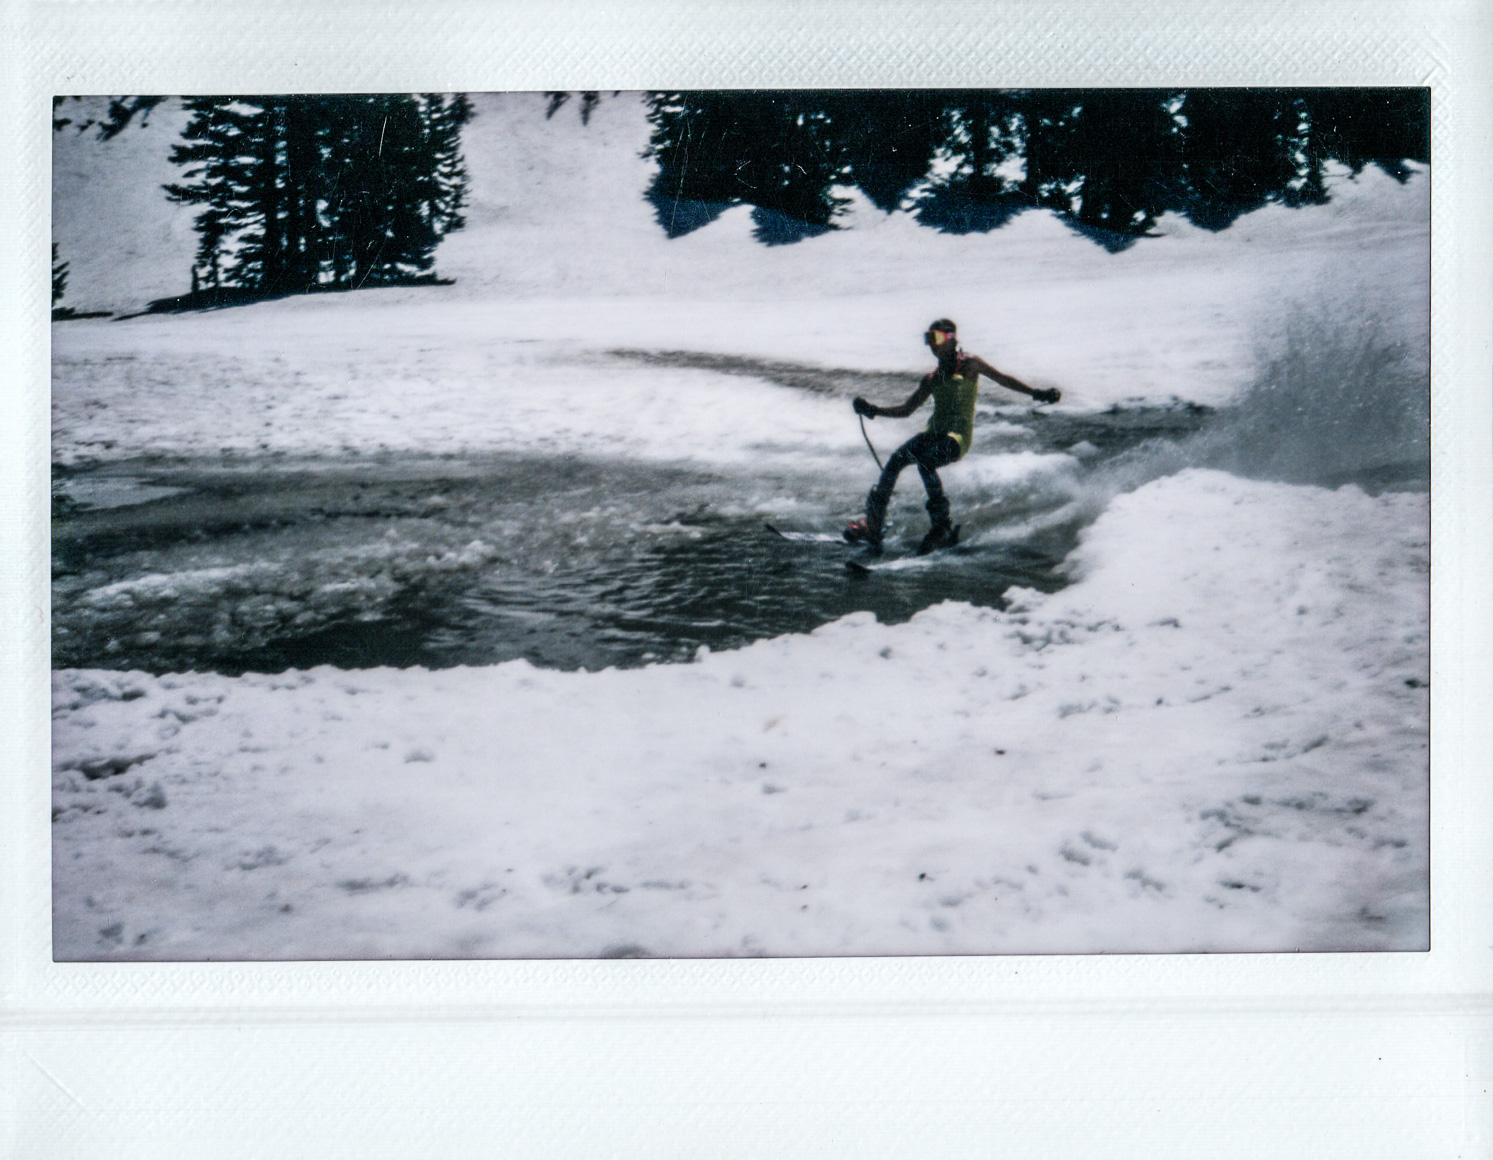 Michael Kunde Photo | Polaroids | Personal | Instant Film